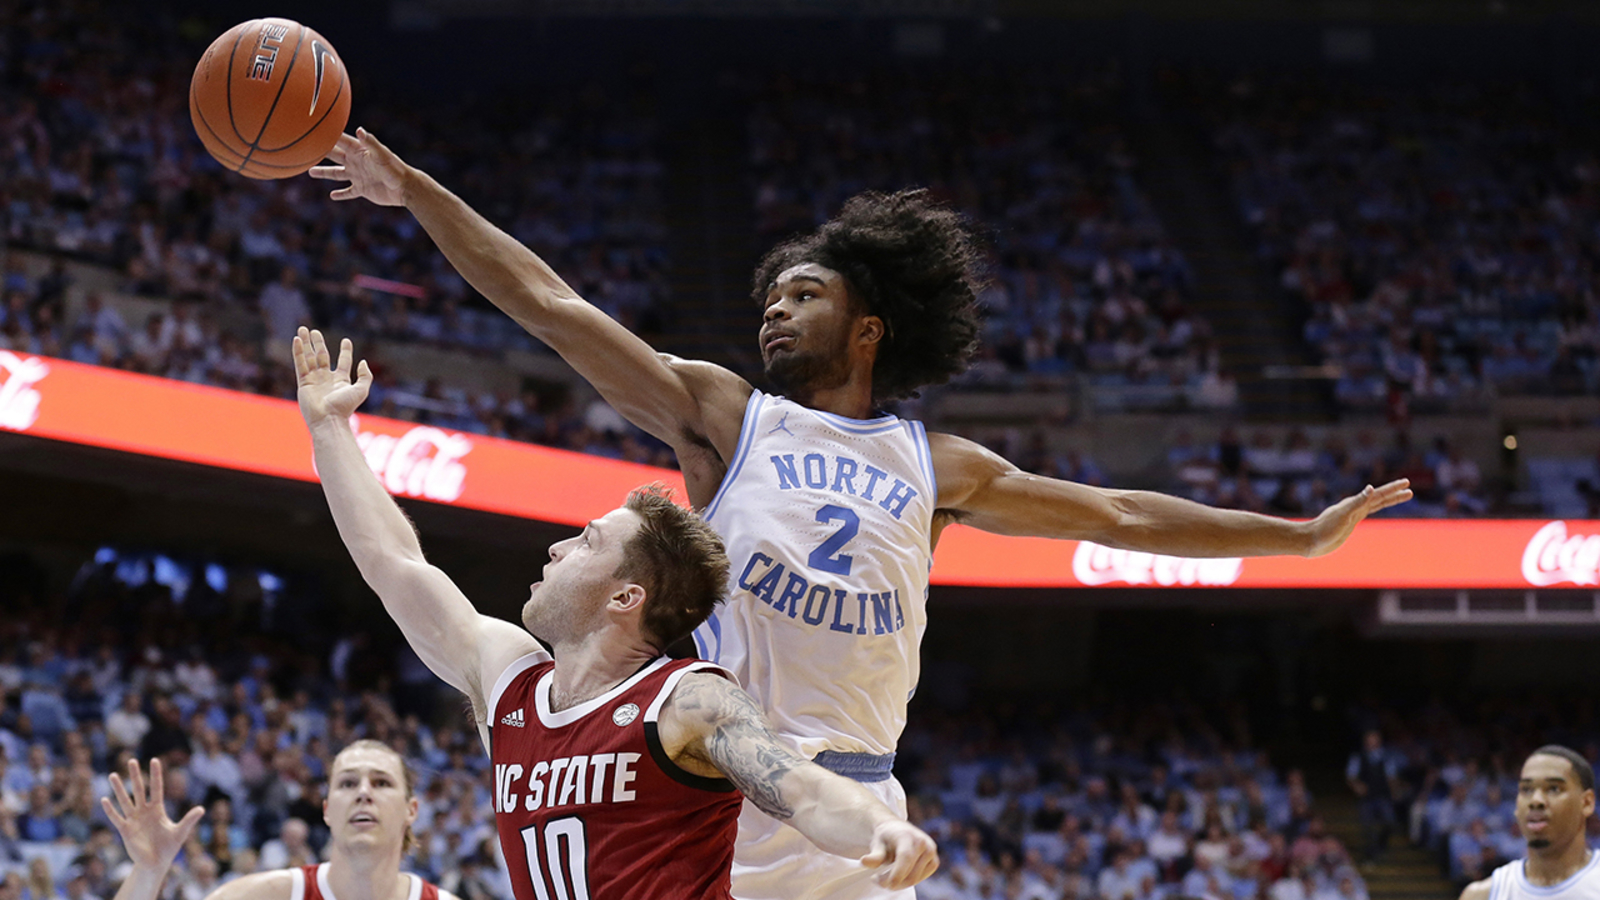 NBA Draft 2019: Chicago Bulls select UNC's Coby White in 7th overall pick